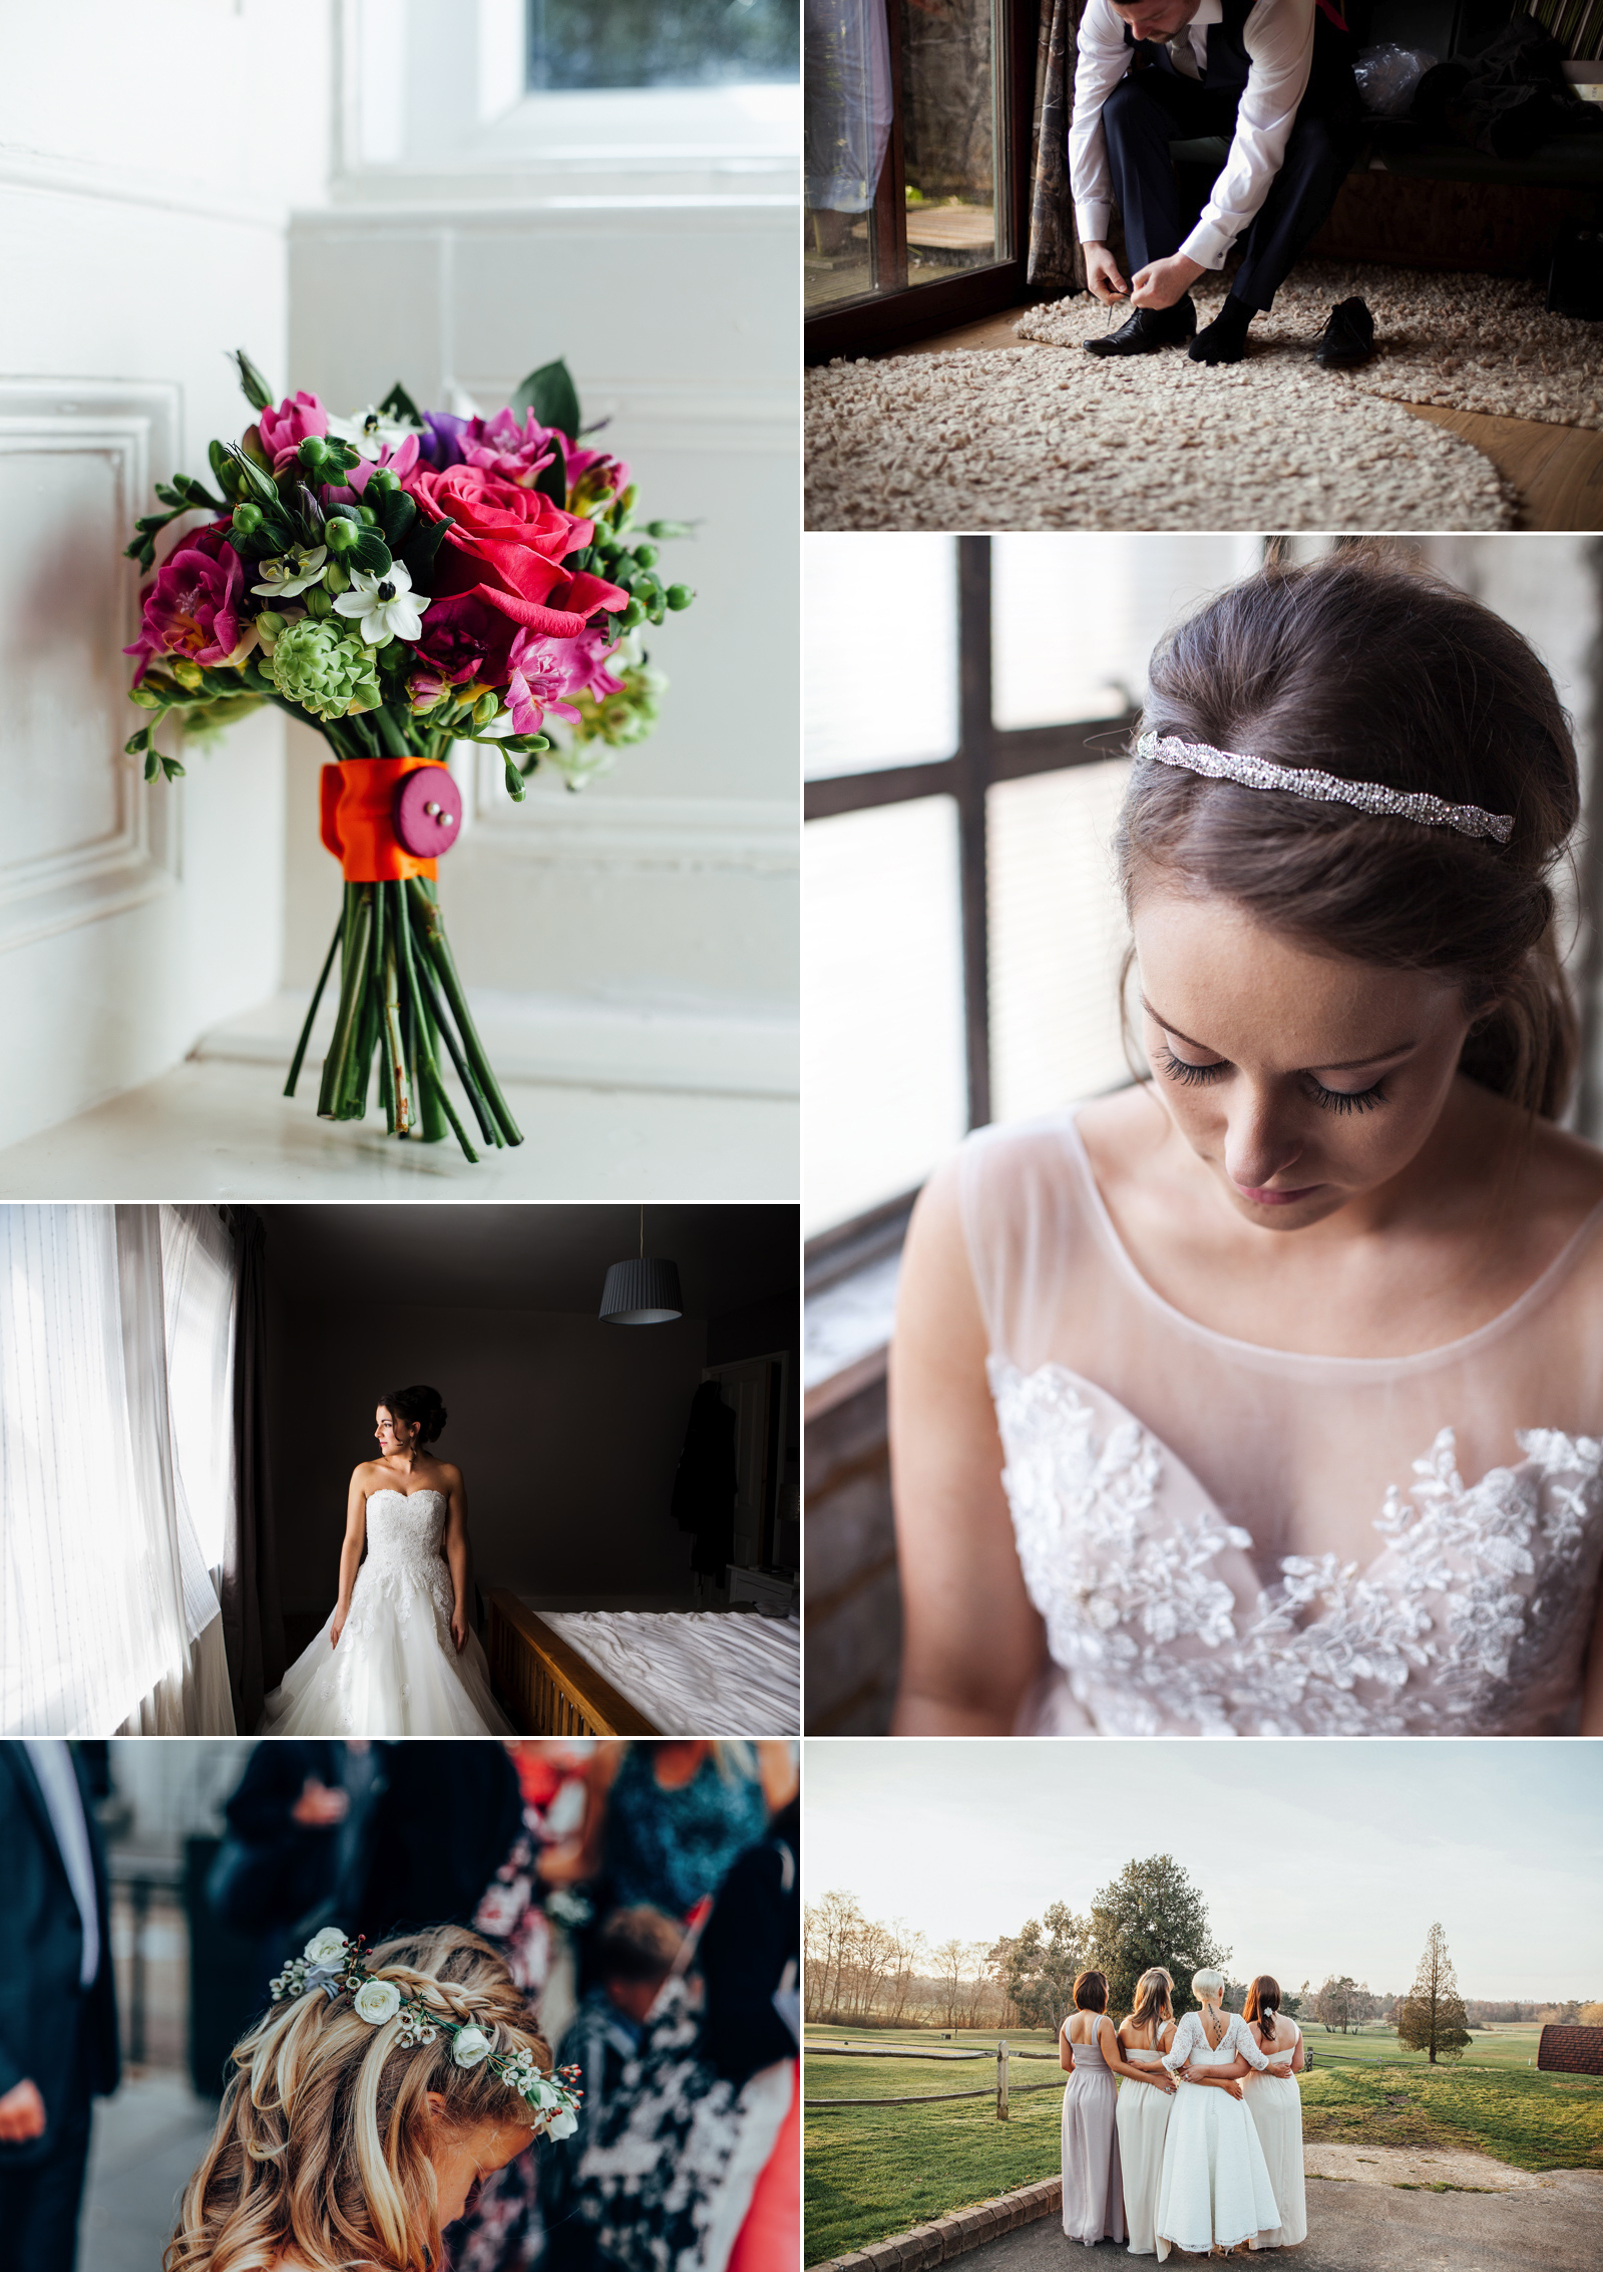 win-your-wedding-photography-with-charlotte-bryer-ash-coco-wedding-venues-competition-social-media